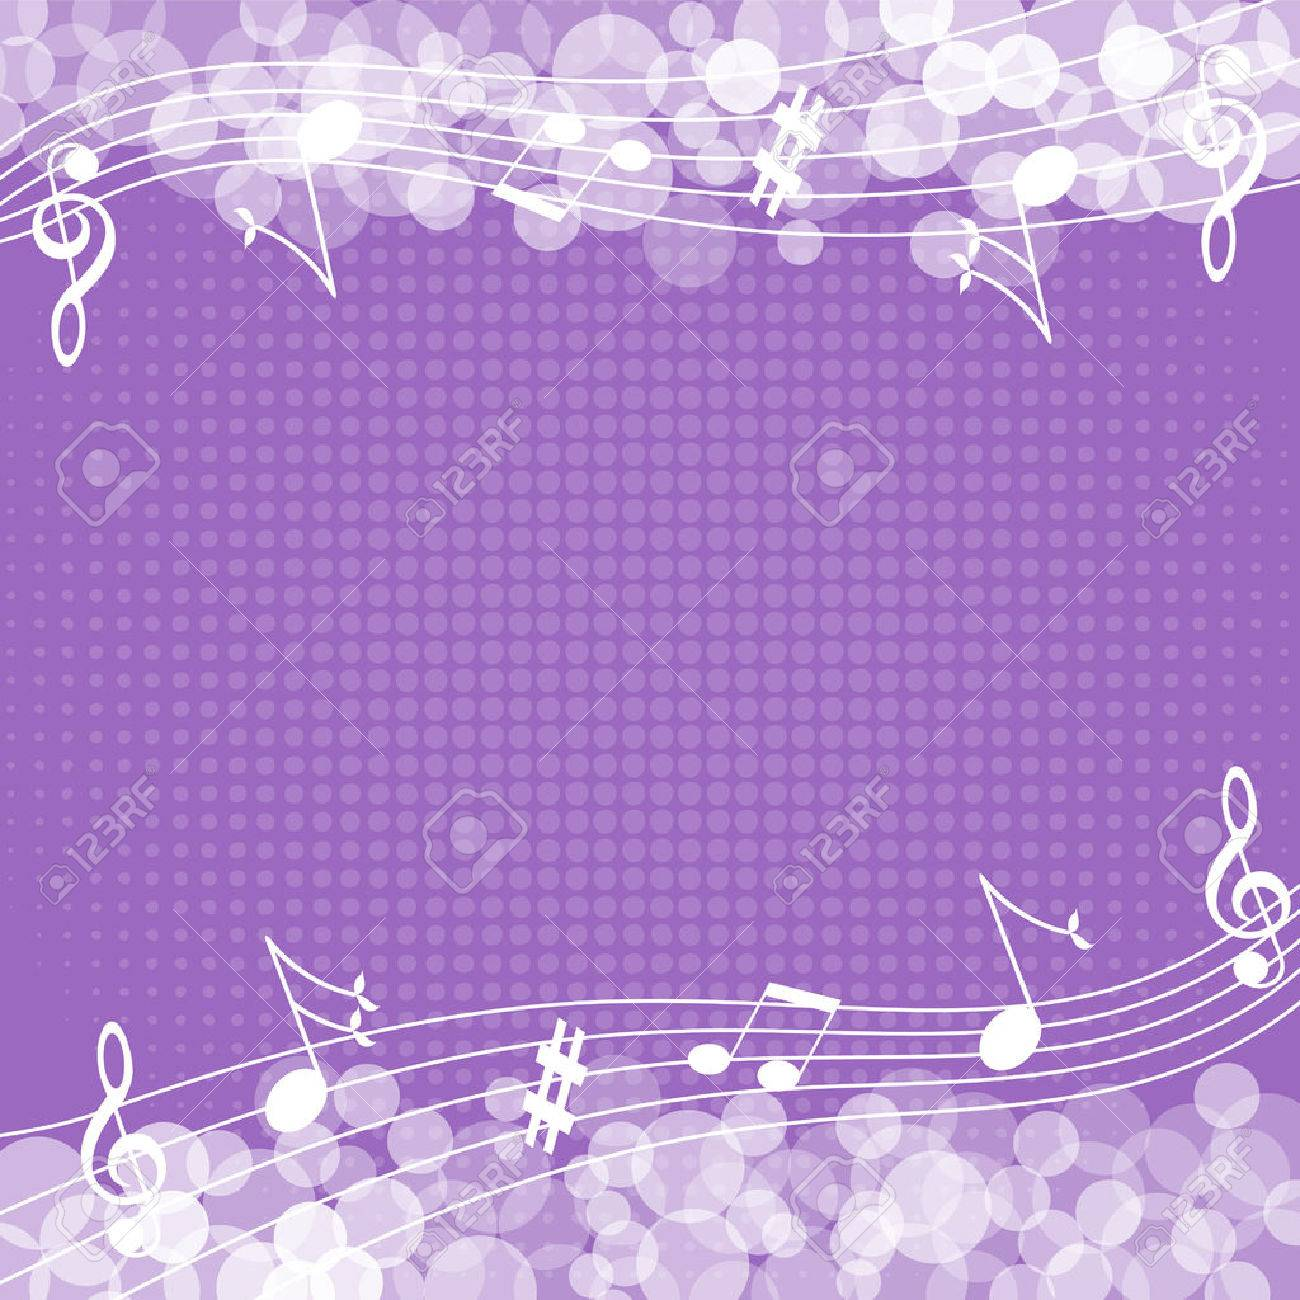 Music notes background-Vector illustration Stock Vector - 39234924